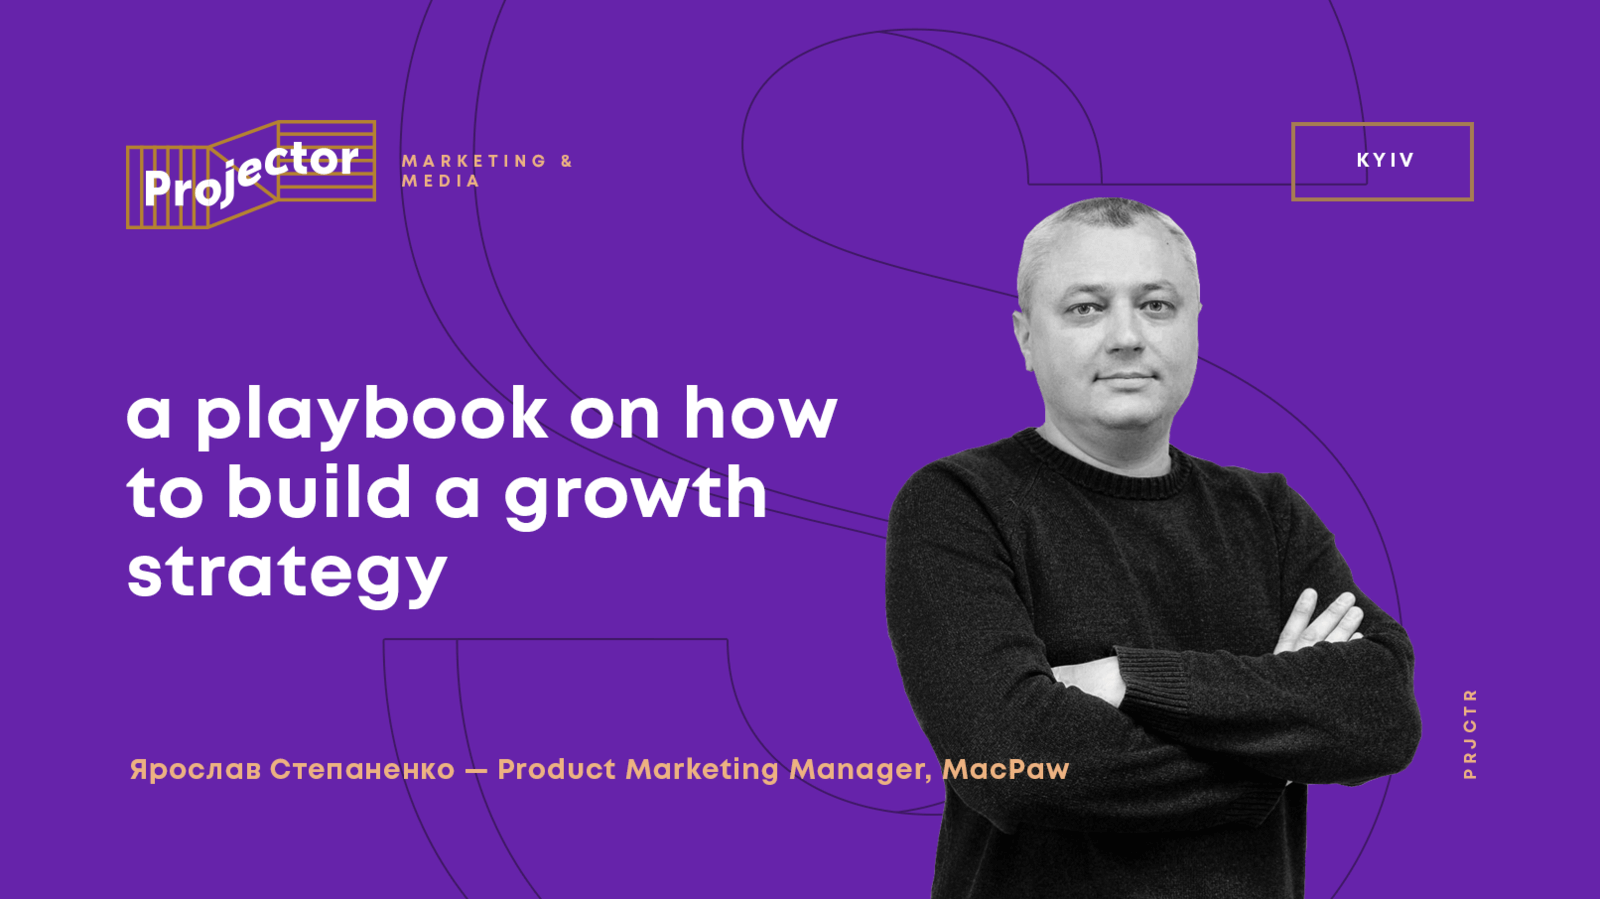 A playbook on how to build a growth strategy